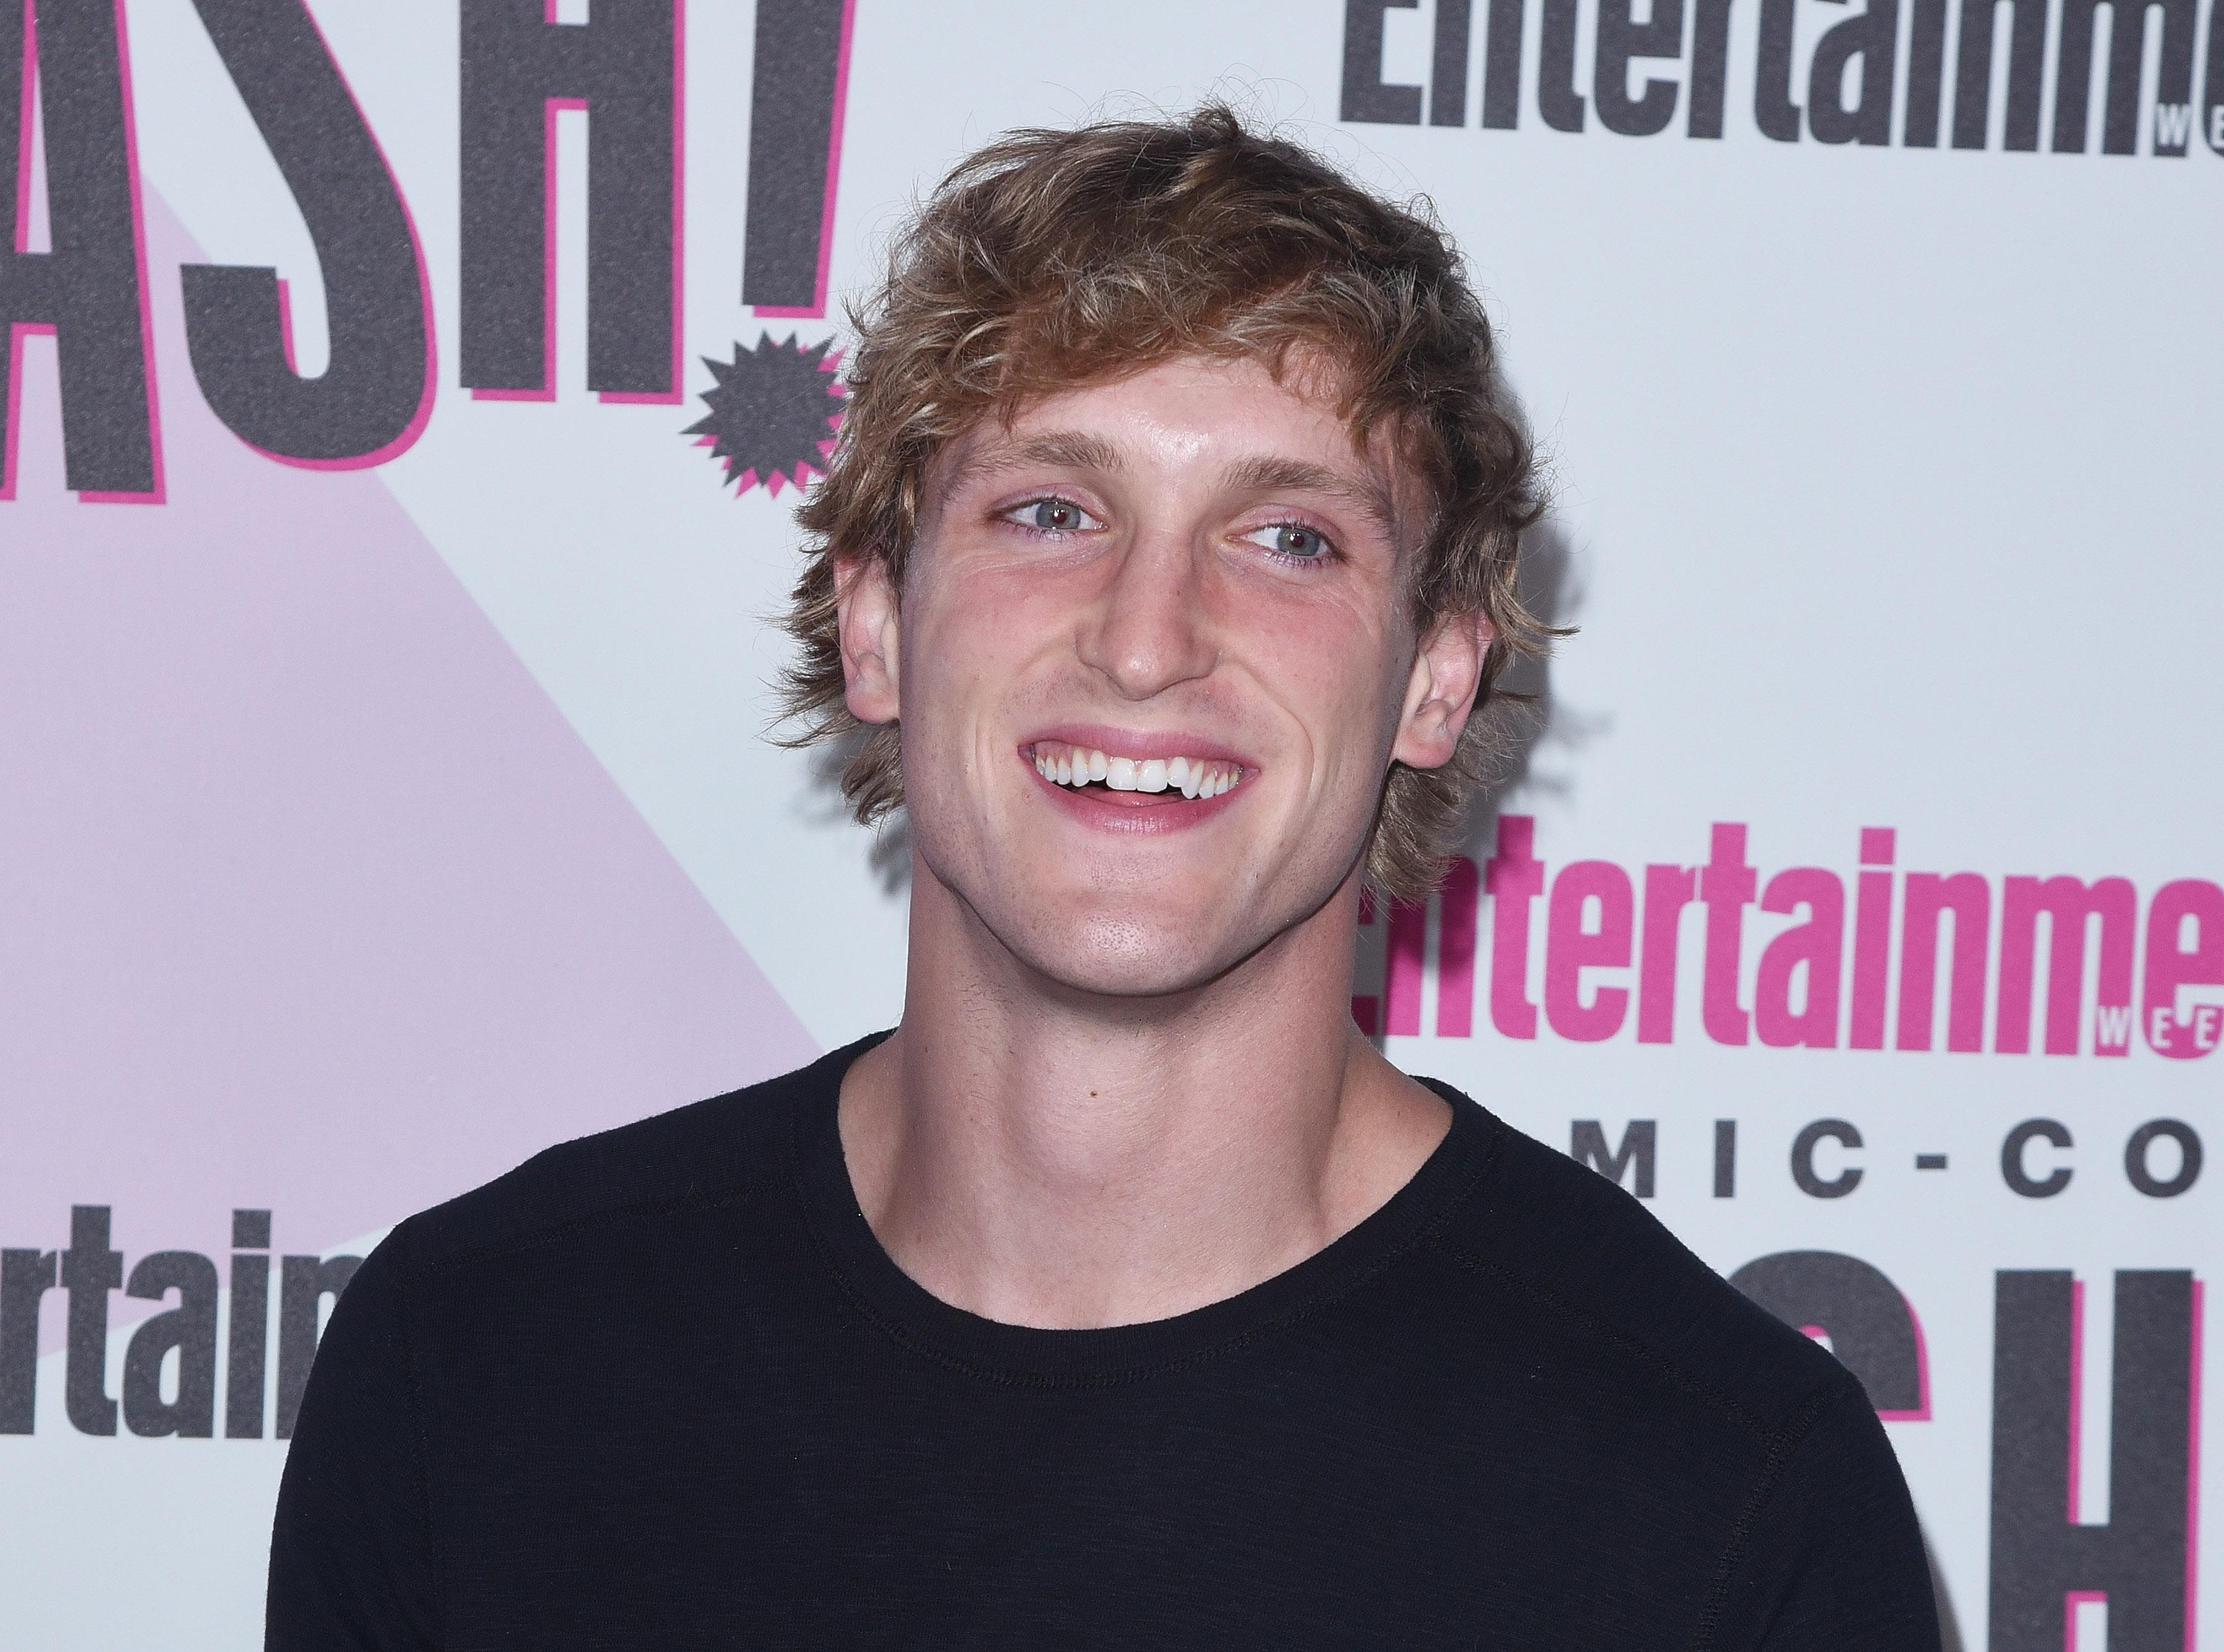 Logan Paul caused controversy on YouTube for filming himself in the 'suicide forest' in Japan